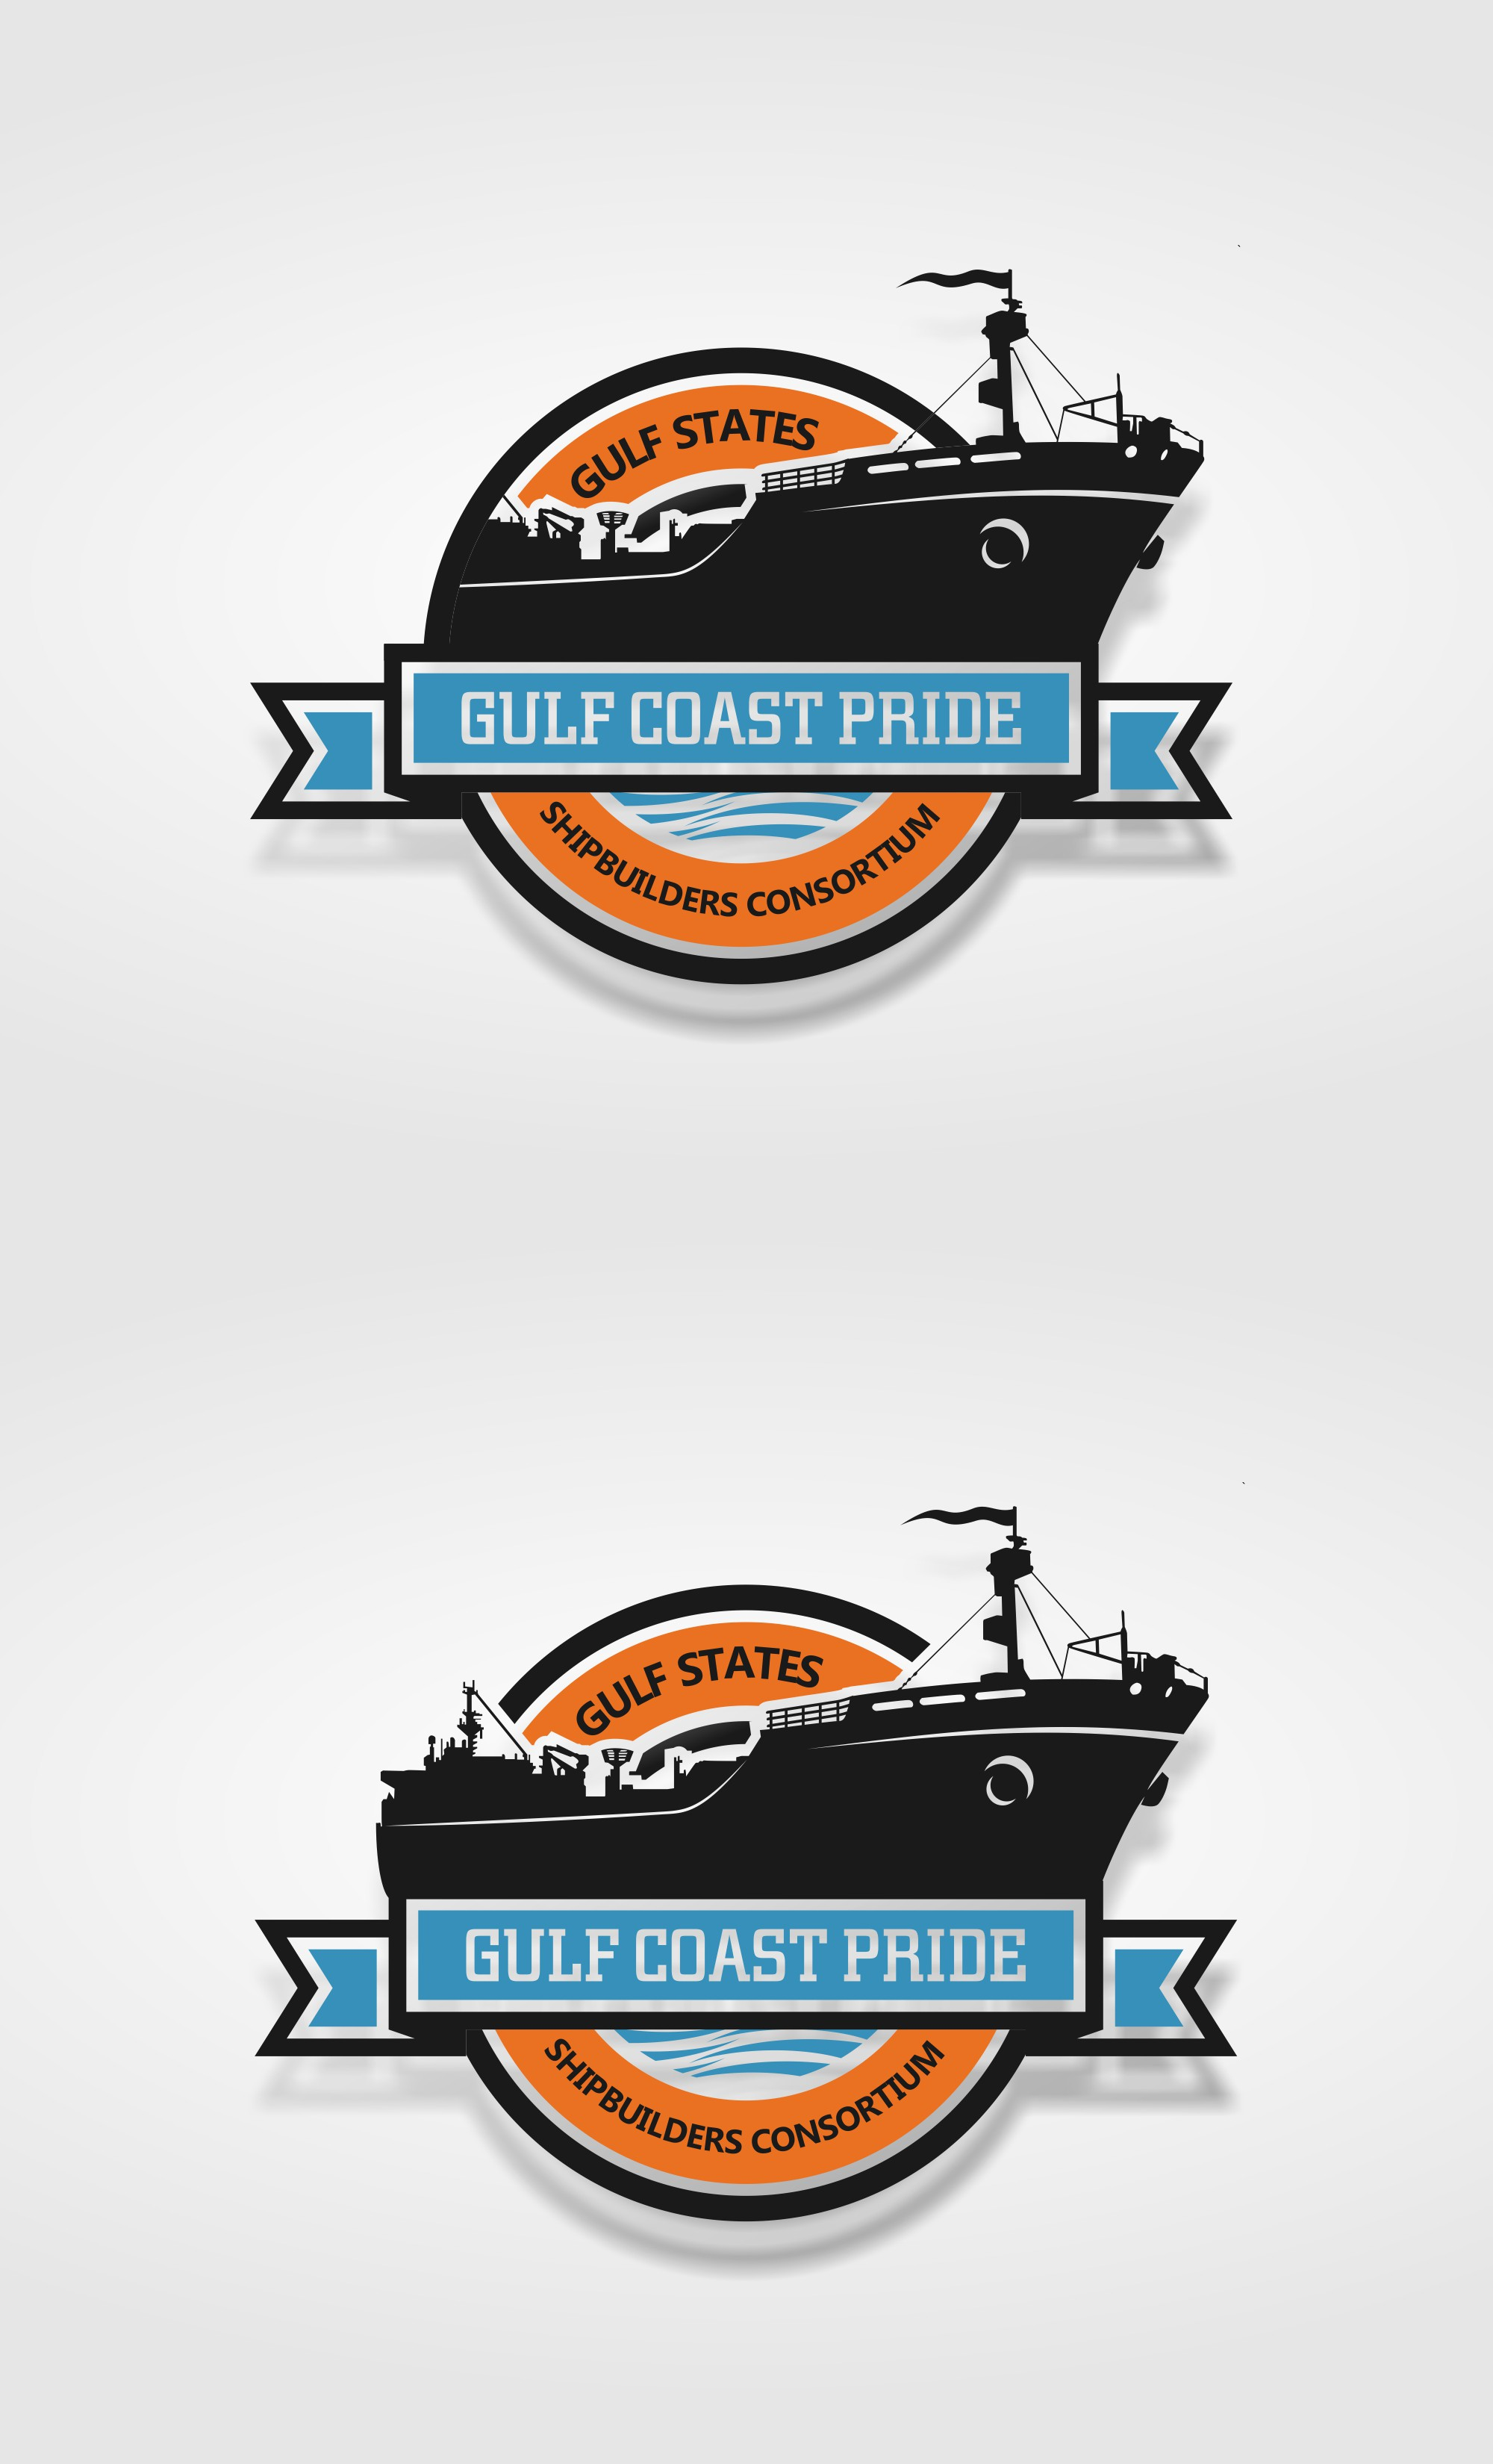 Design the perfect logo to promote Gulf Coast Pride